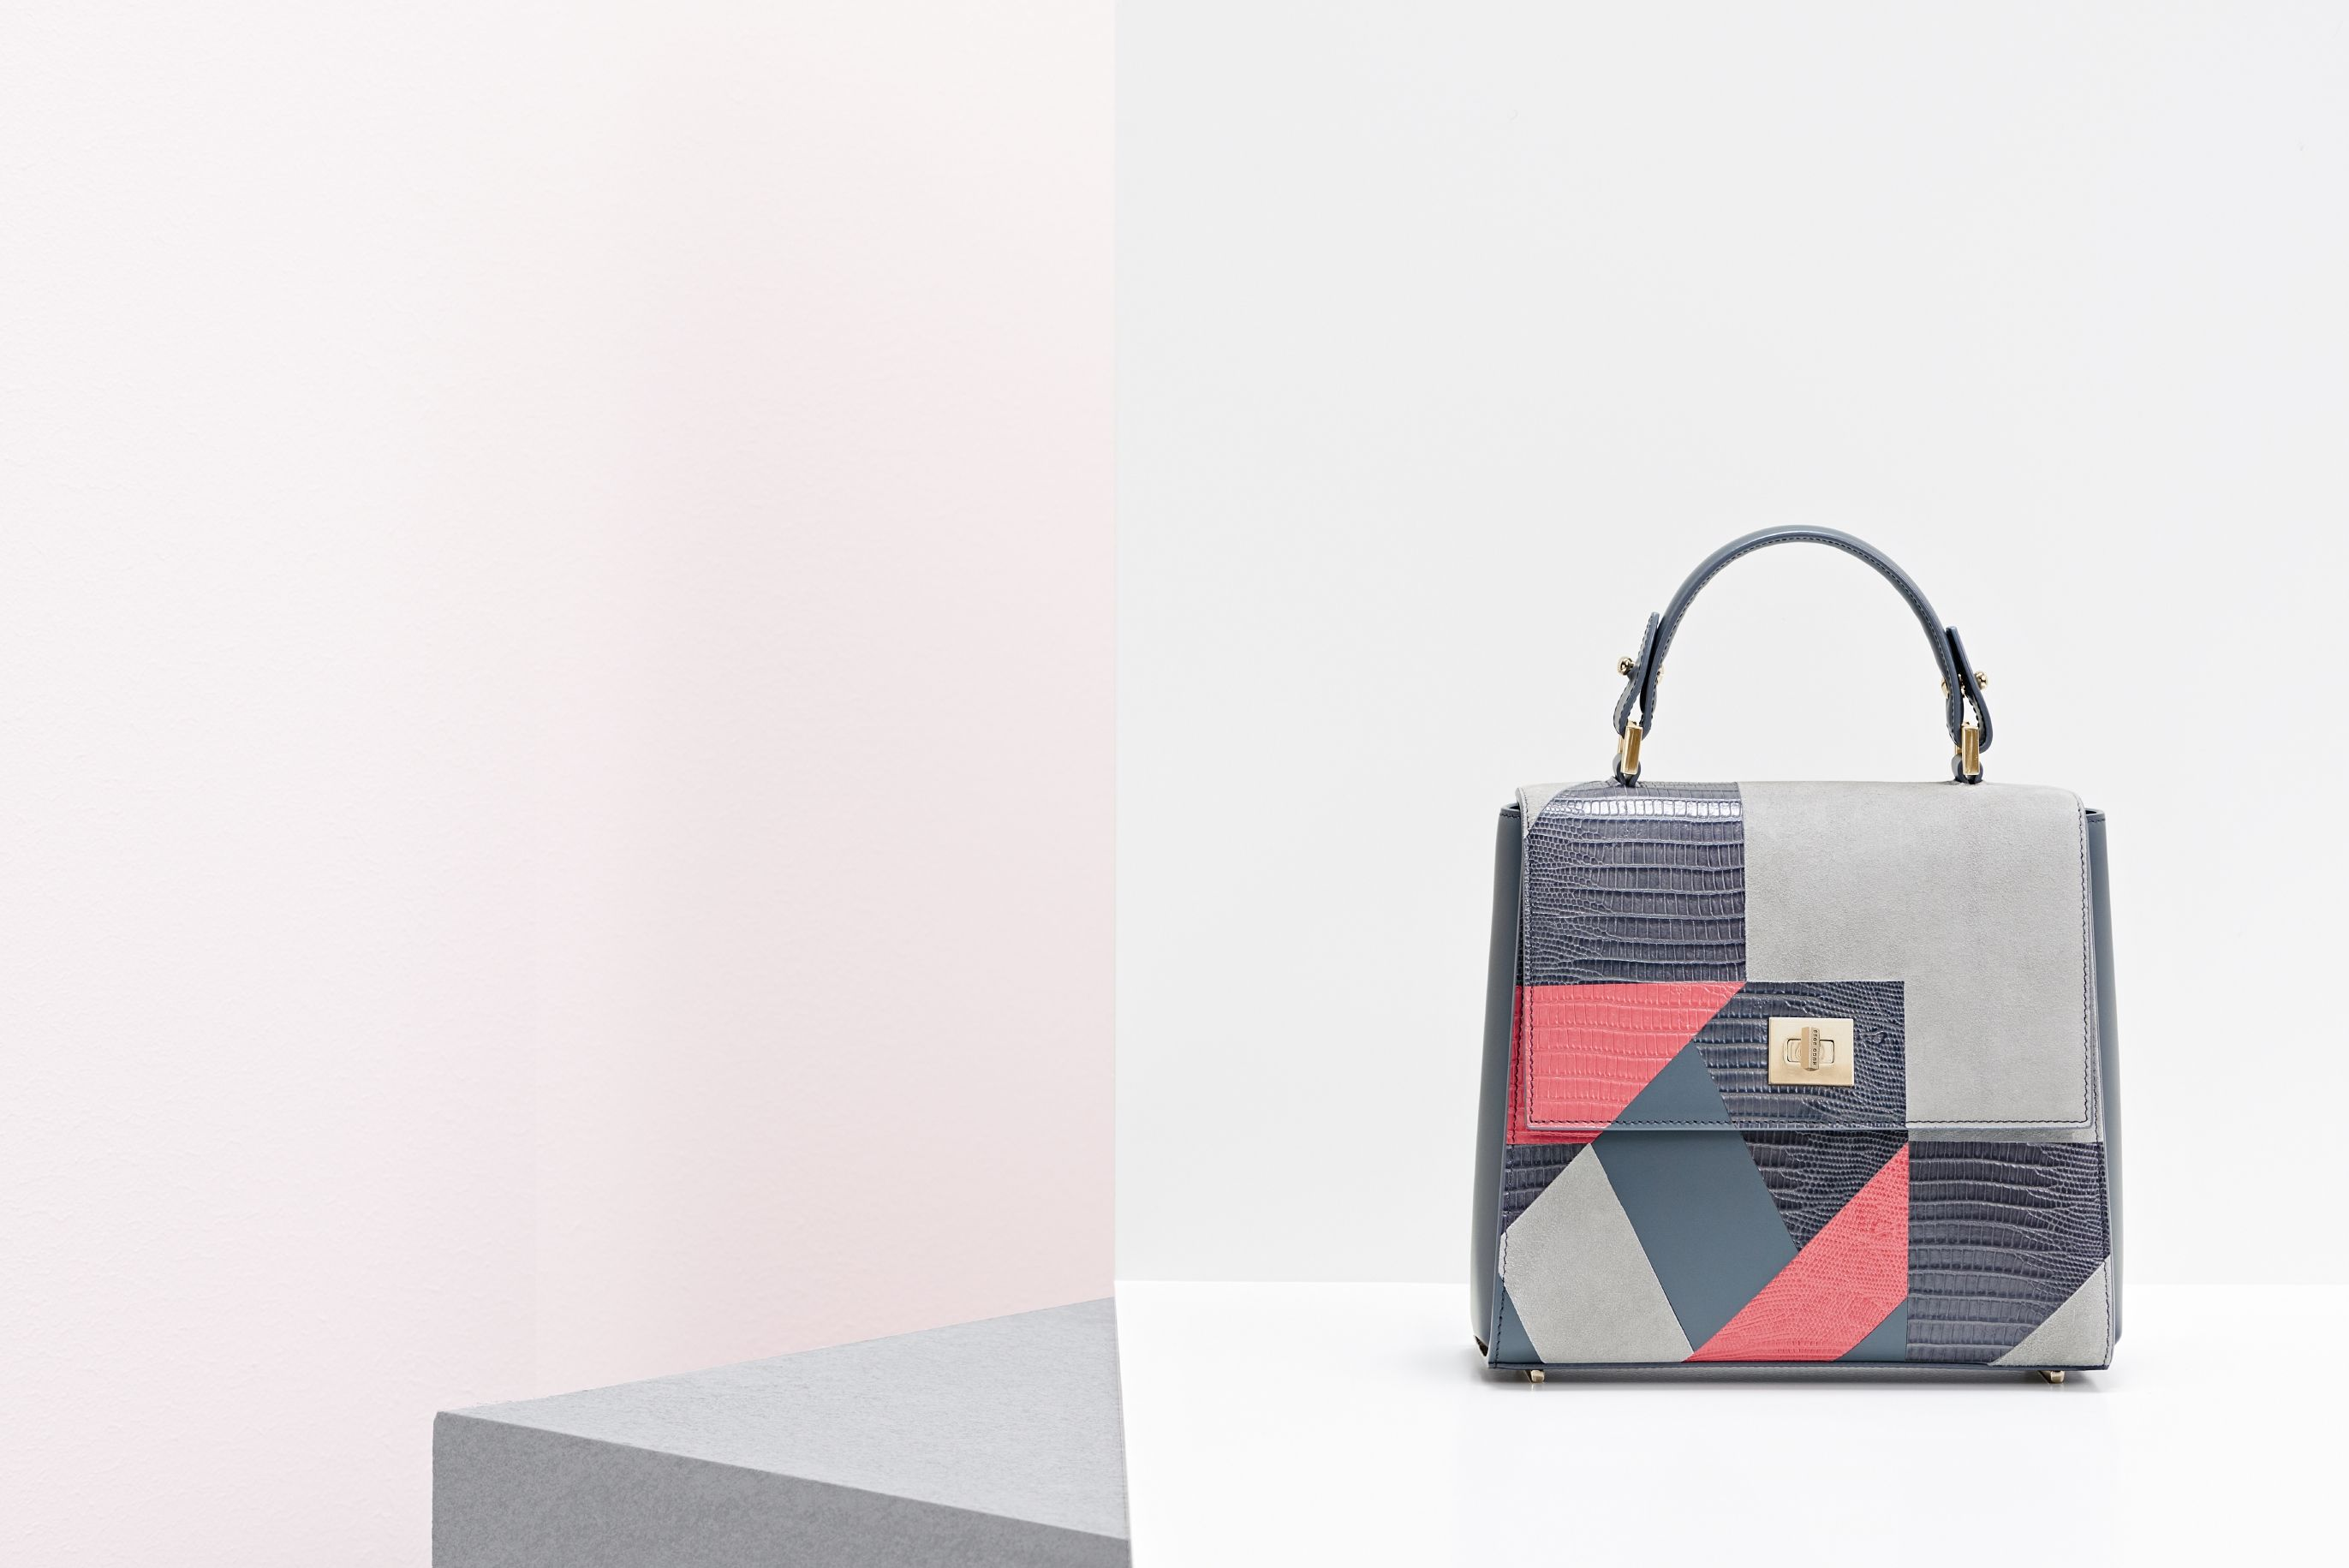 The BOSS Bespoke in a new patchwork design, from the BOSS Womenswear pre-Fall 2016 collection